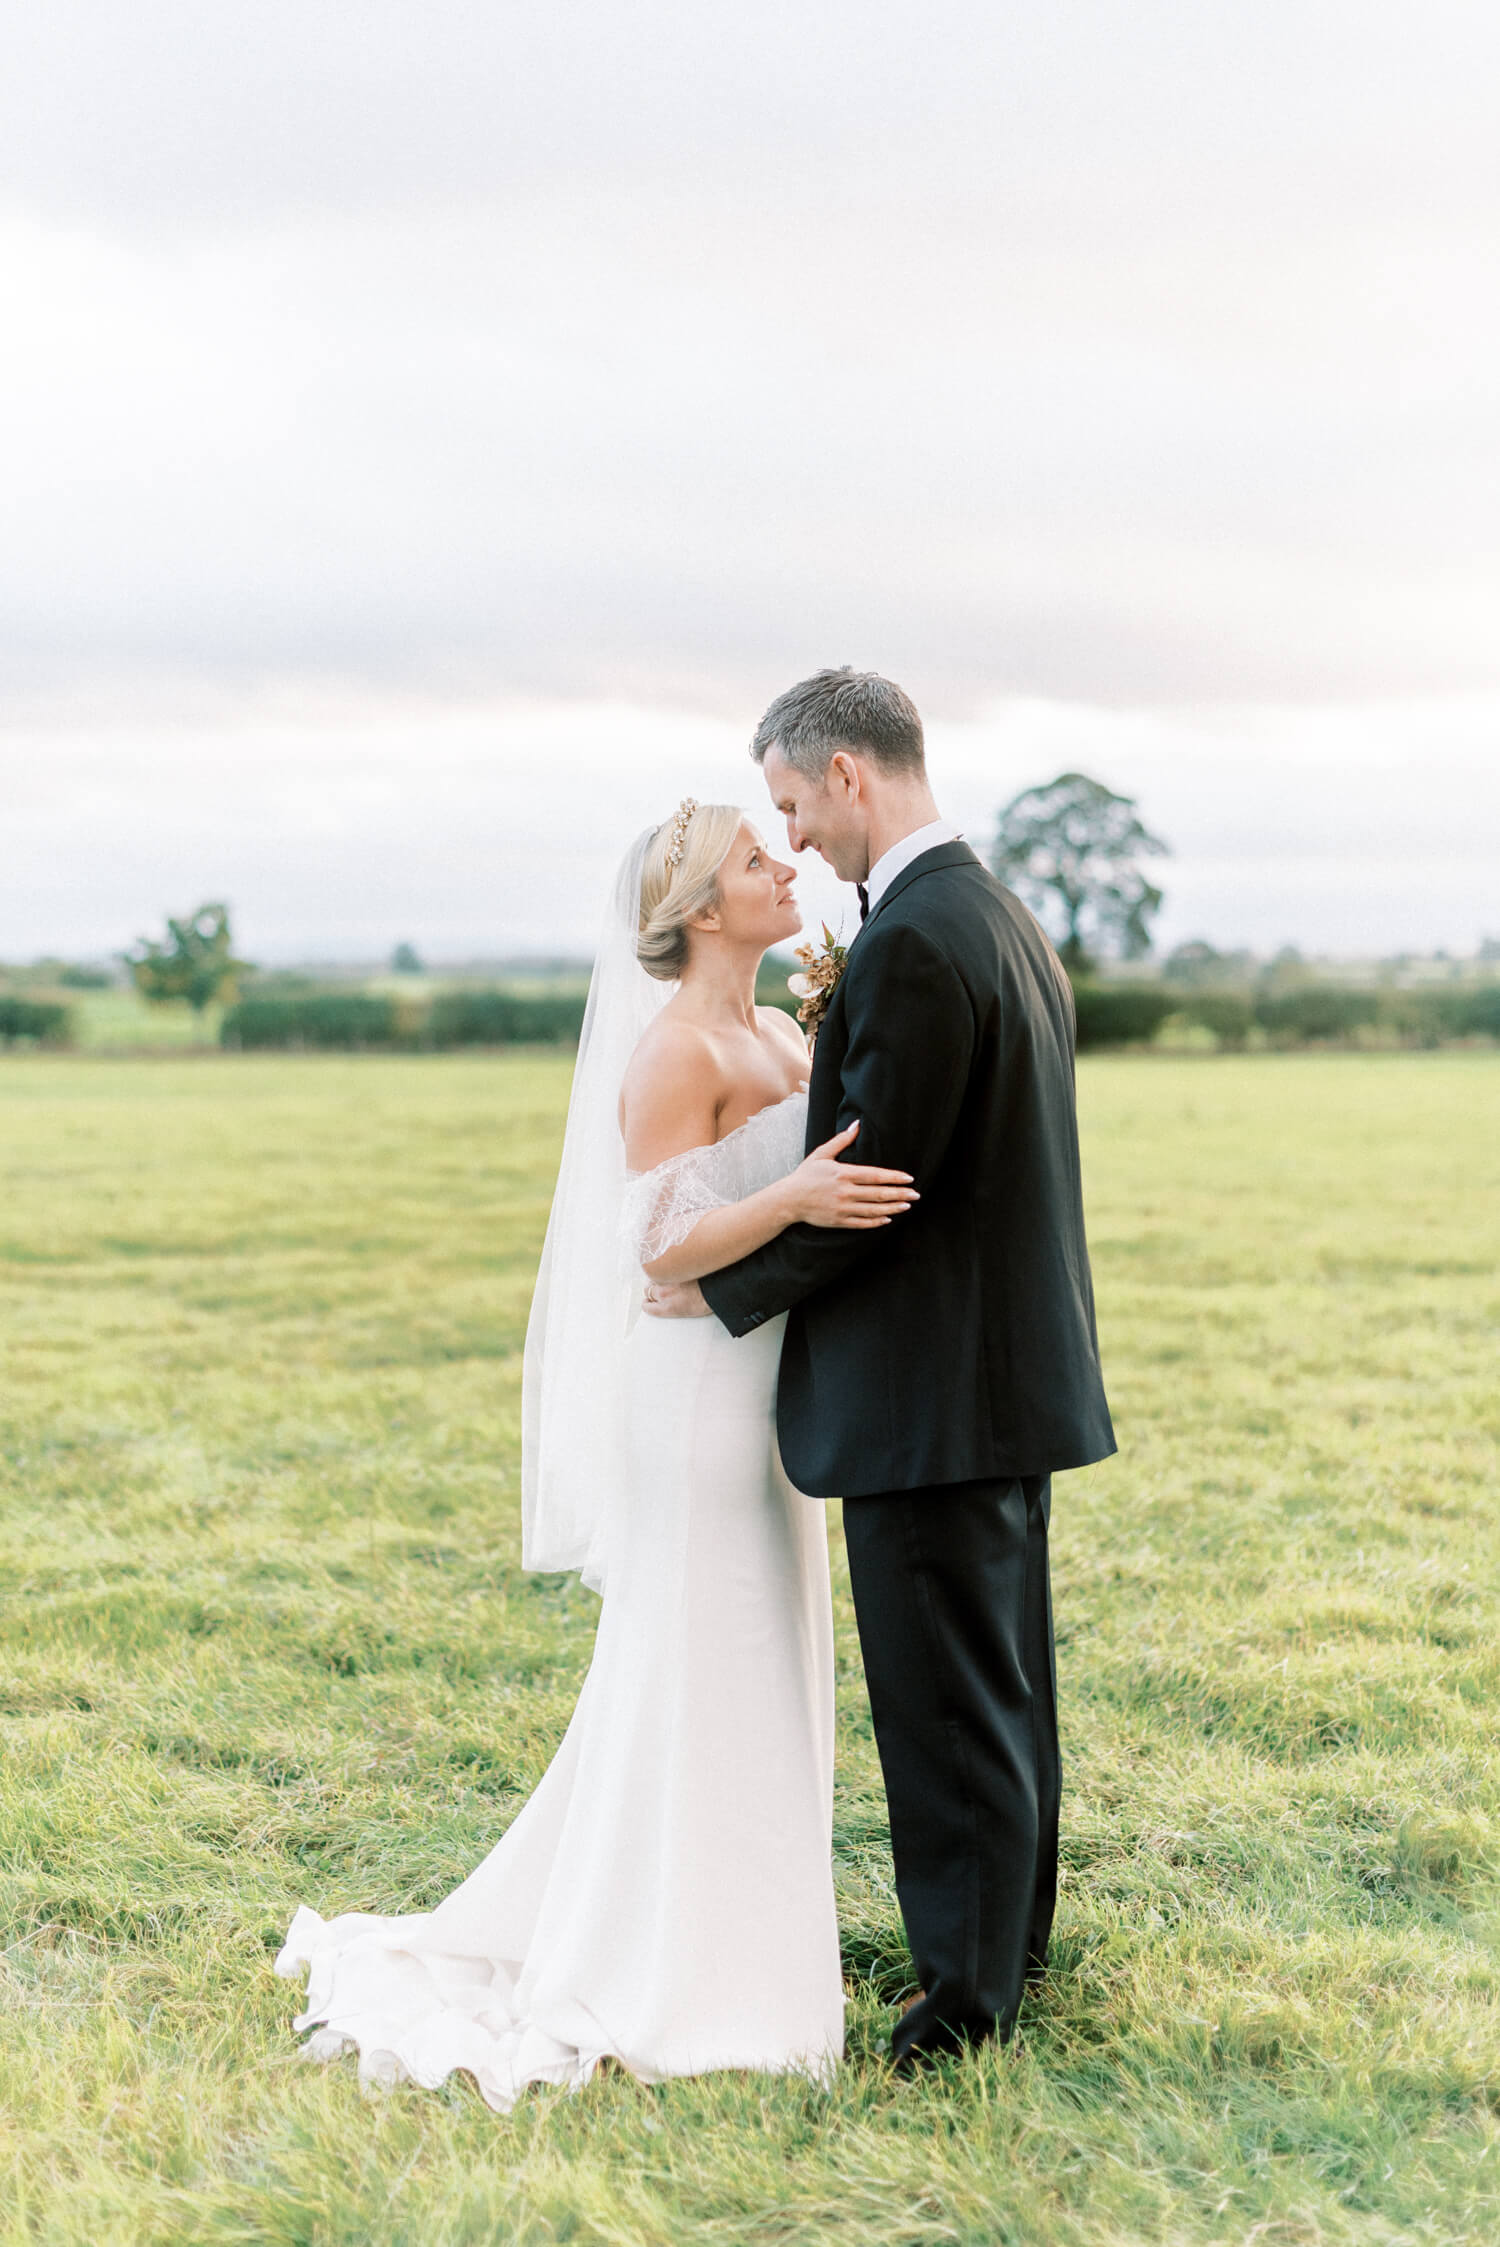 UK destination wedding in a Yorkshire flower farm | In photo: full body portrait of bride and groom looking at each other romantically. Bride is wearing a custom fitted off-shoulder white wedding dress by Cherry Williams London and accessories by Agnes Hart. Groom is wearing a black wedding suit